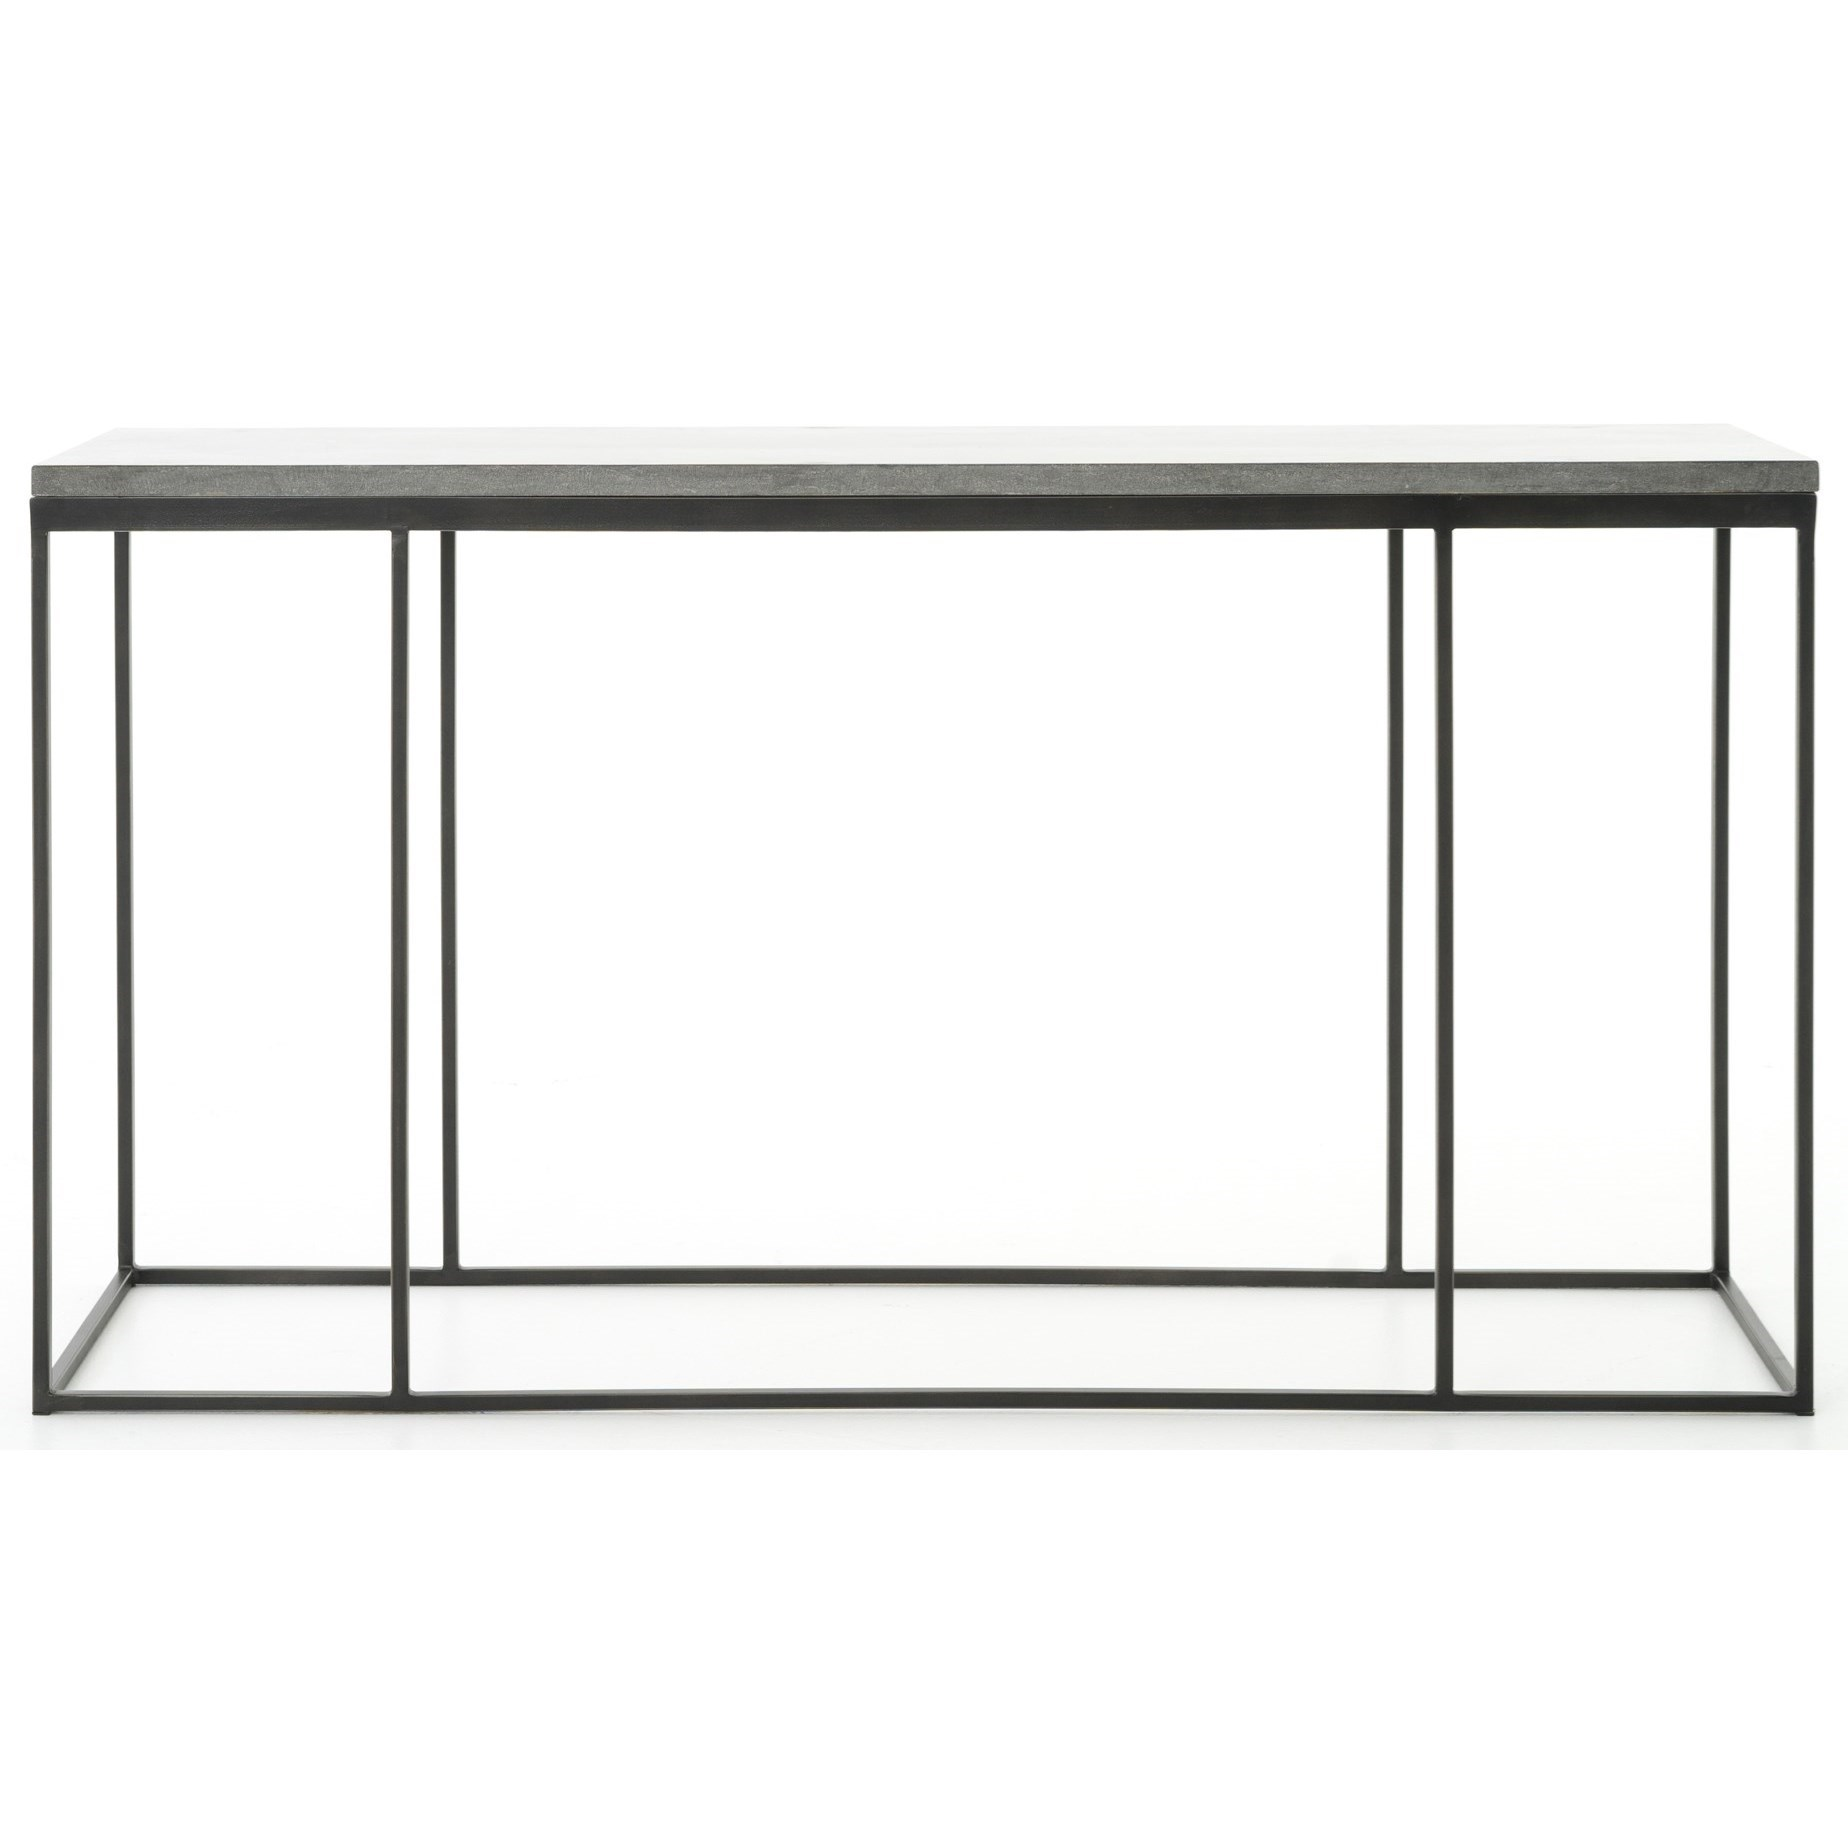 Hughes Console Table by Interior Style at Sprintz Furniture